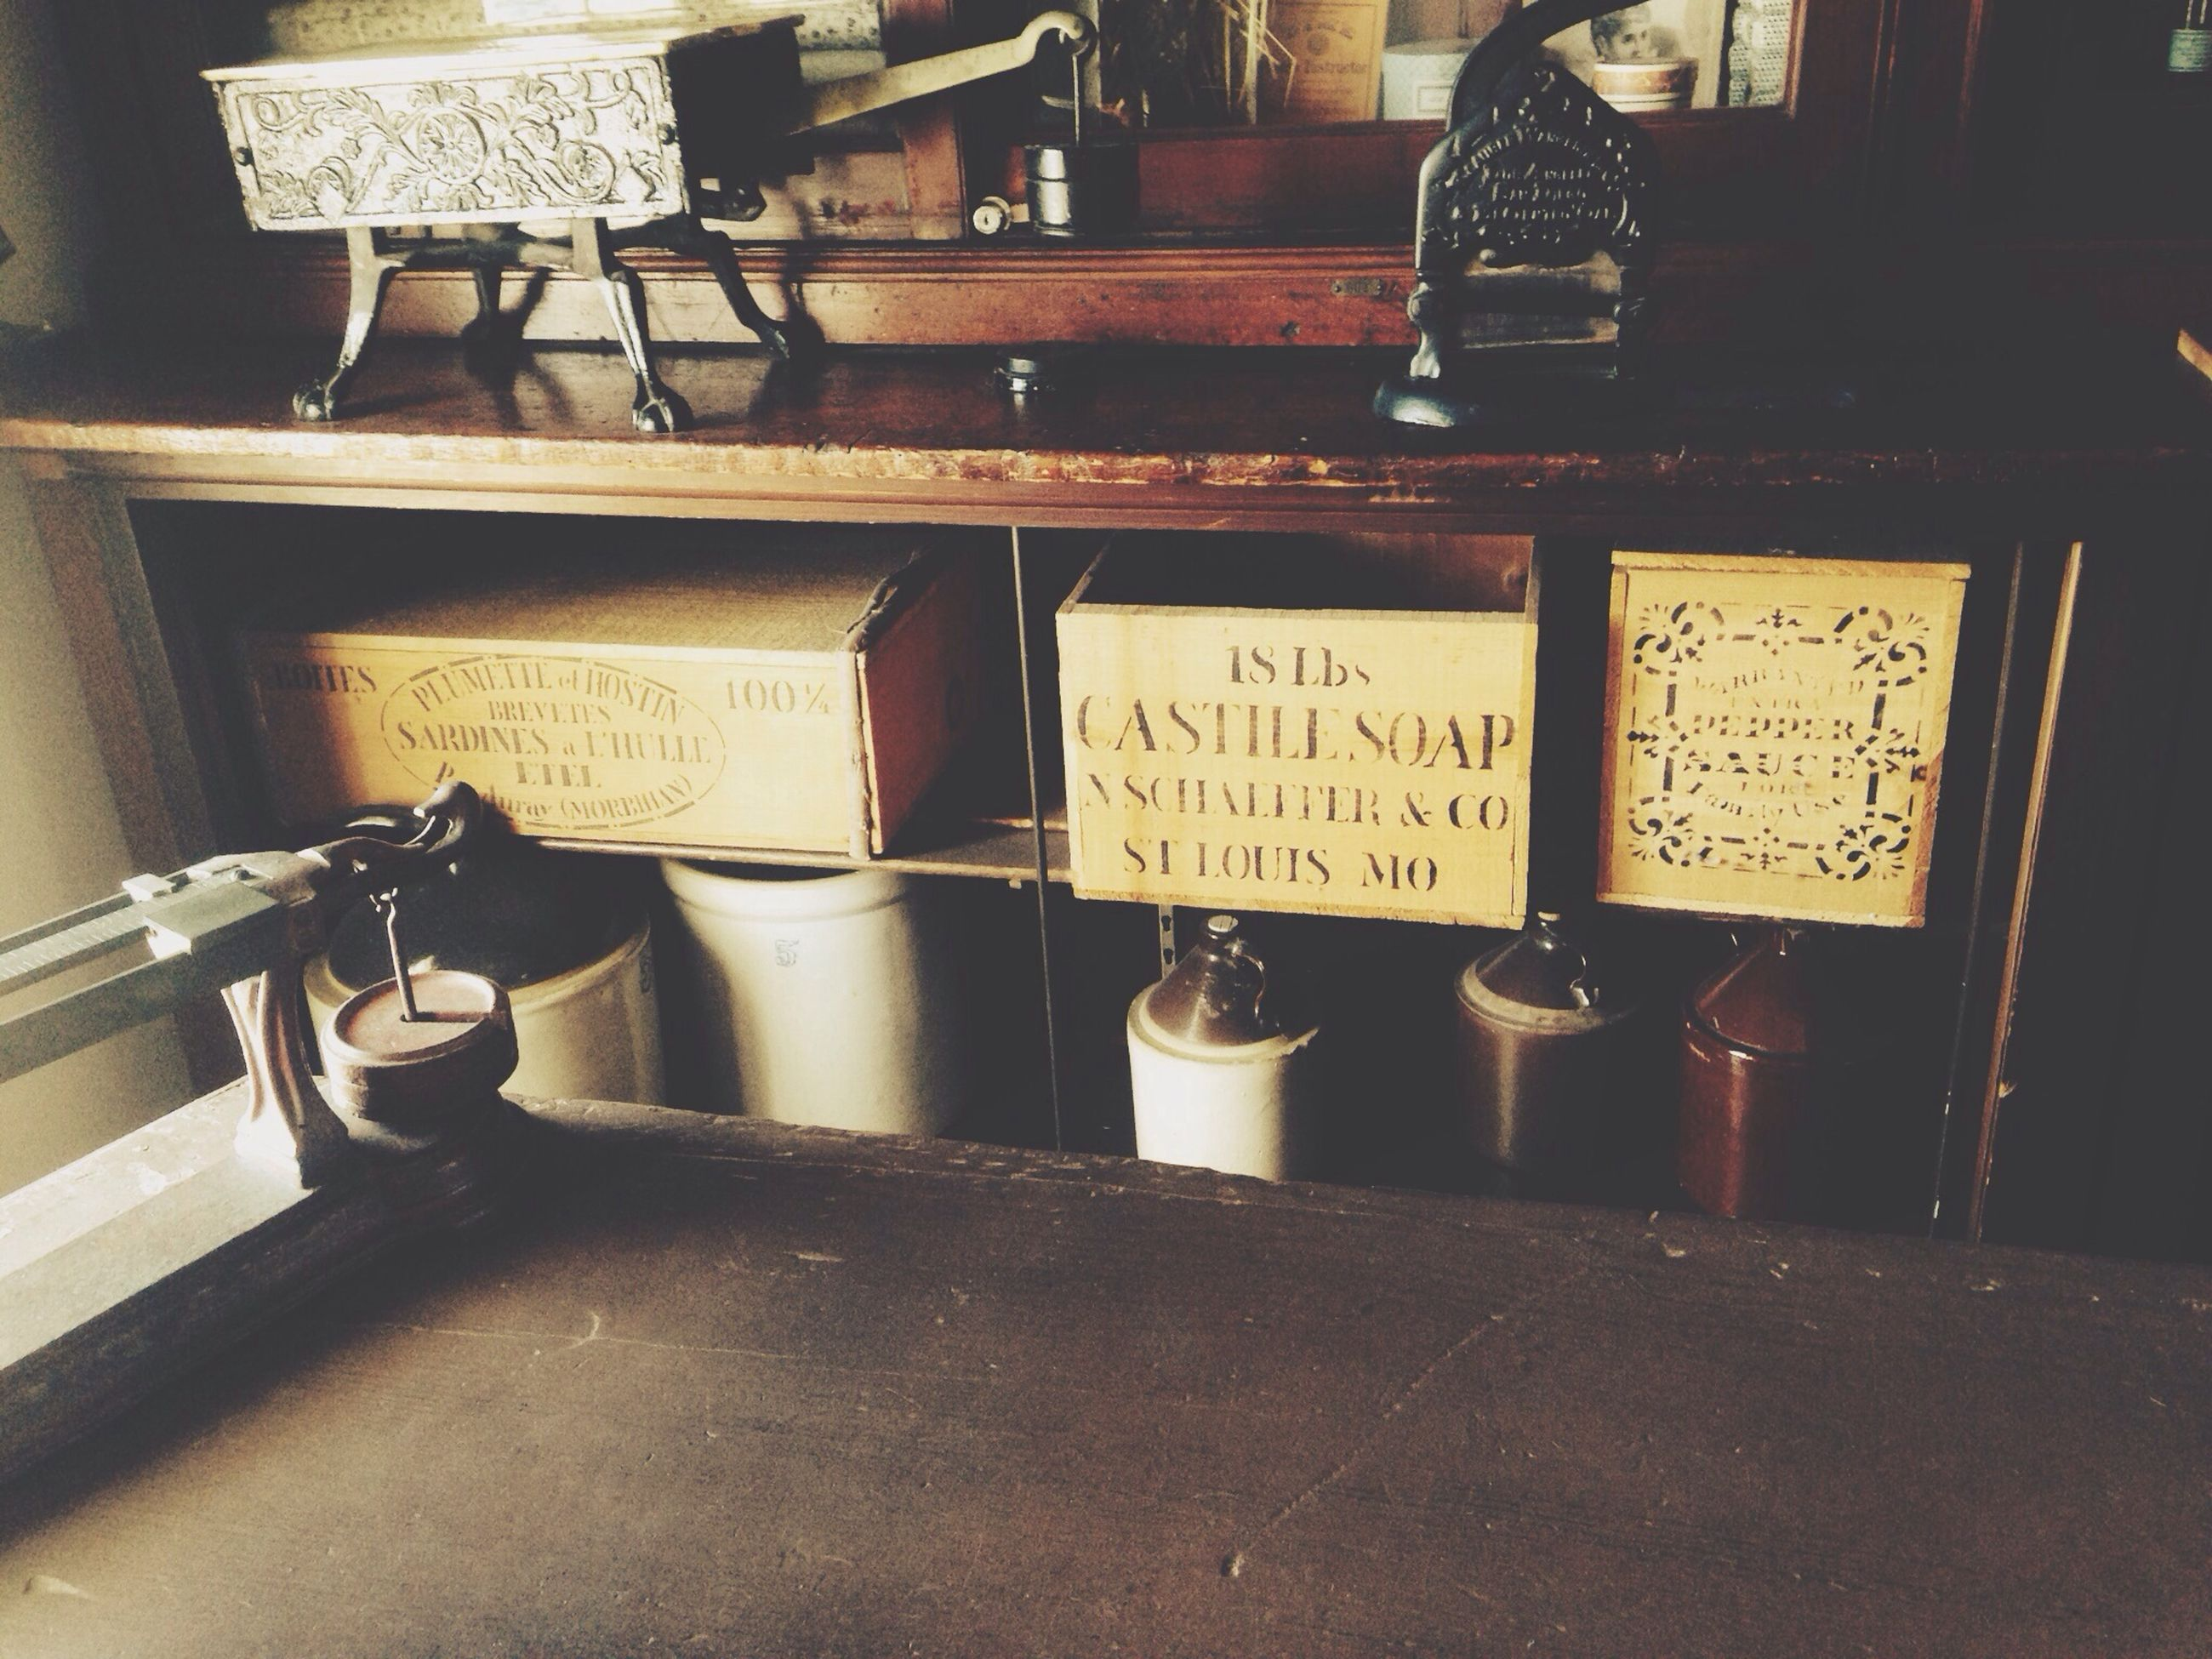 indoors, still life, table, old-fashioned, communication, metal, technology, old, retro styled, antique, close-up, no people, equipment, text, telephone, home interior, day, wood - material, western script, wall - building feature